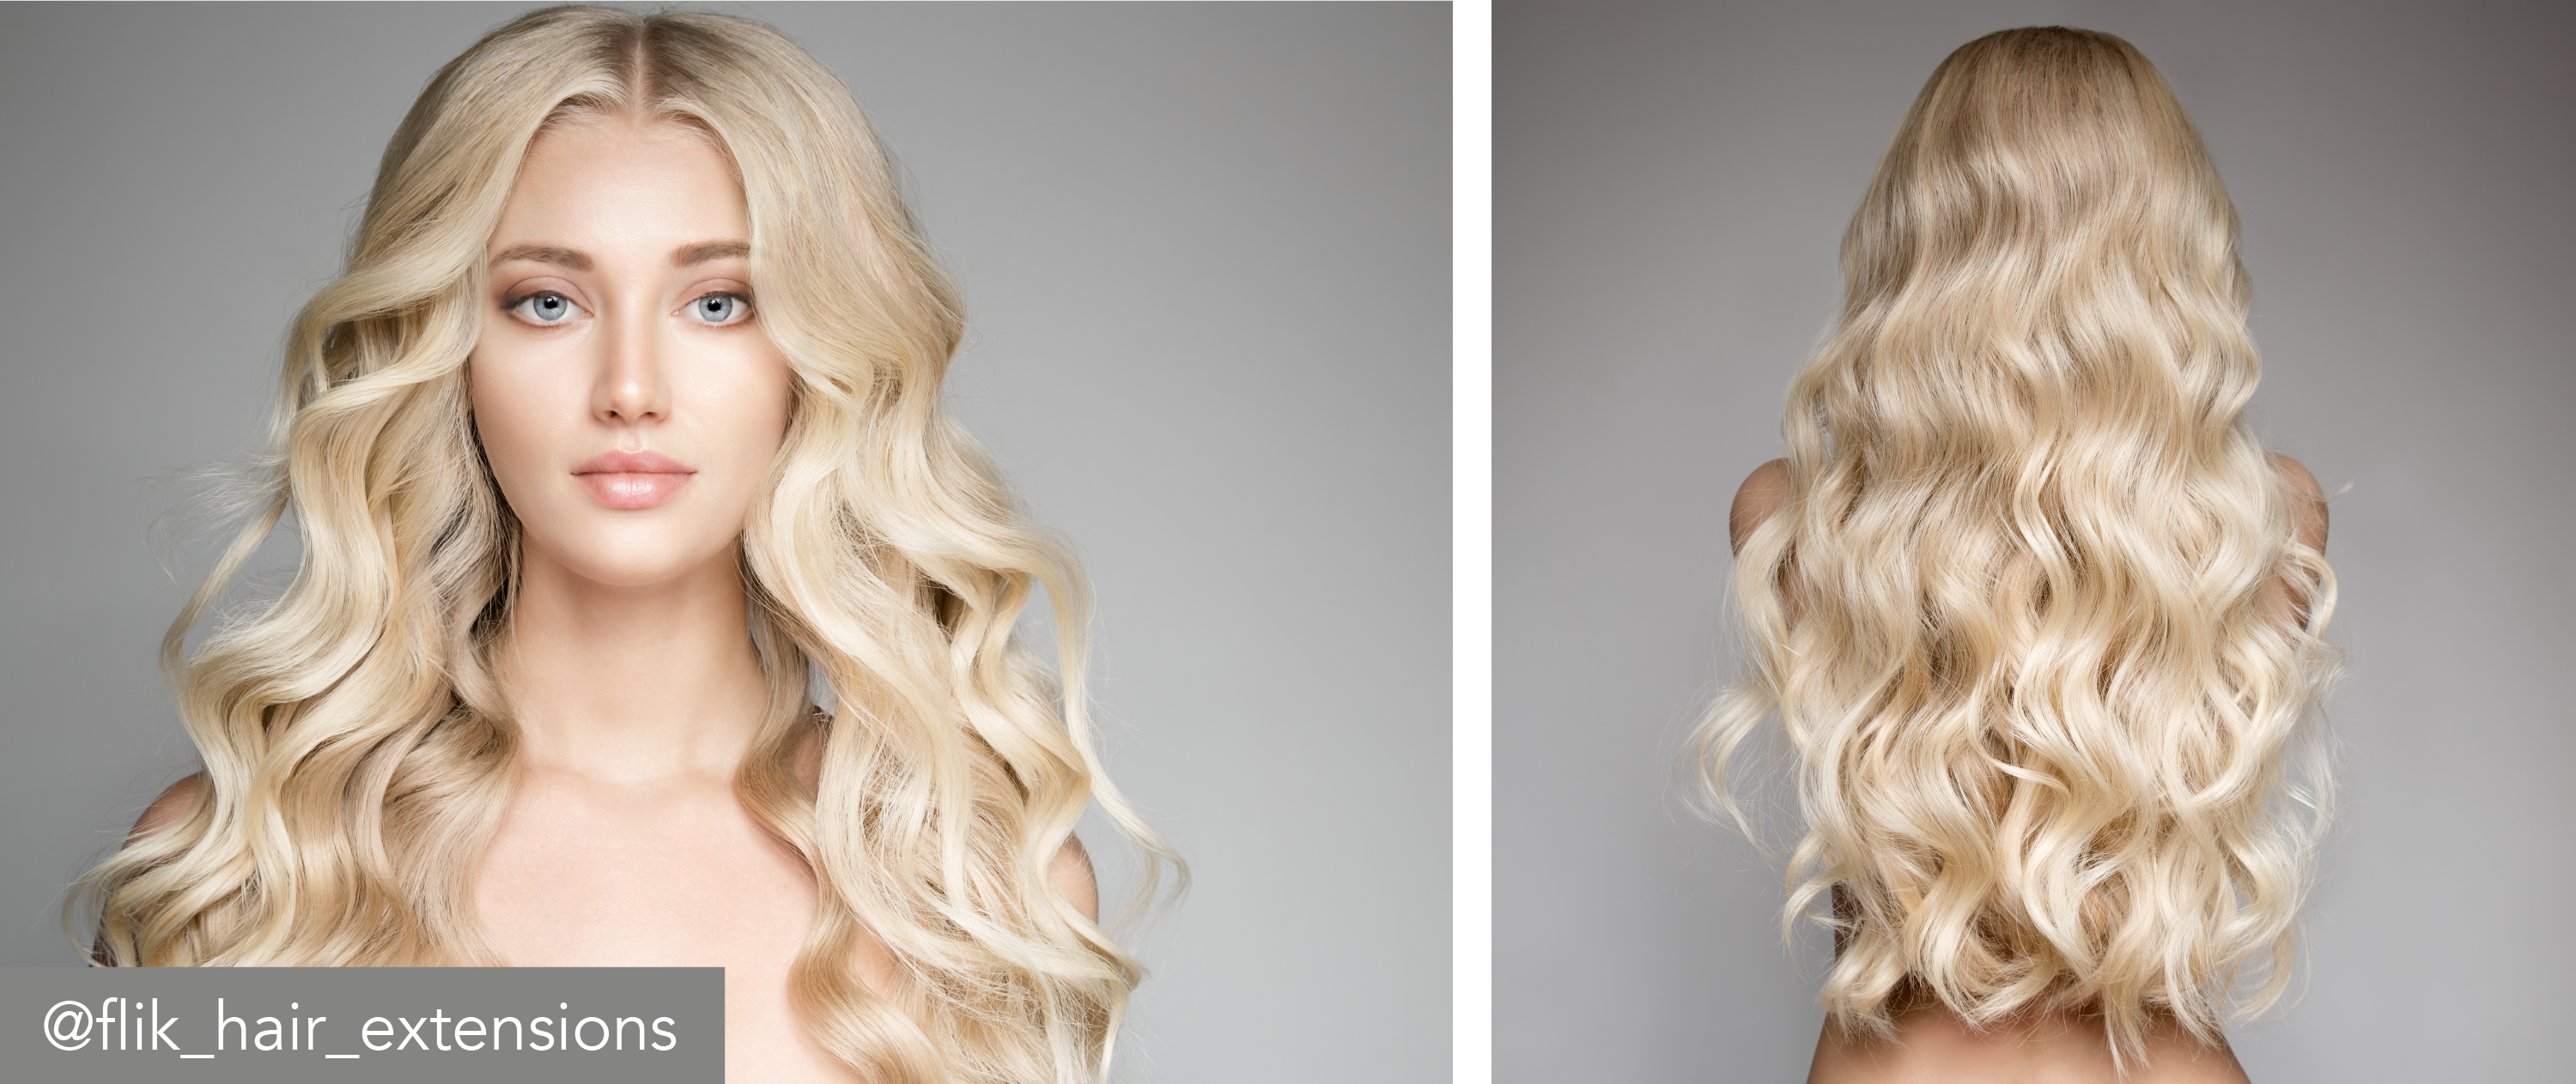 Different types of hair extensions flik hair extensions tape in hair extensions contain a tape like adhesive which allows it to be attached to the hair by sandwiching two pieces together with your hair in the pmusecretfo Images